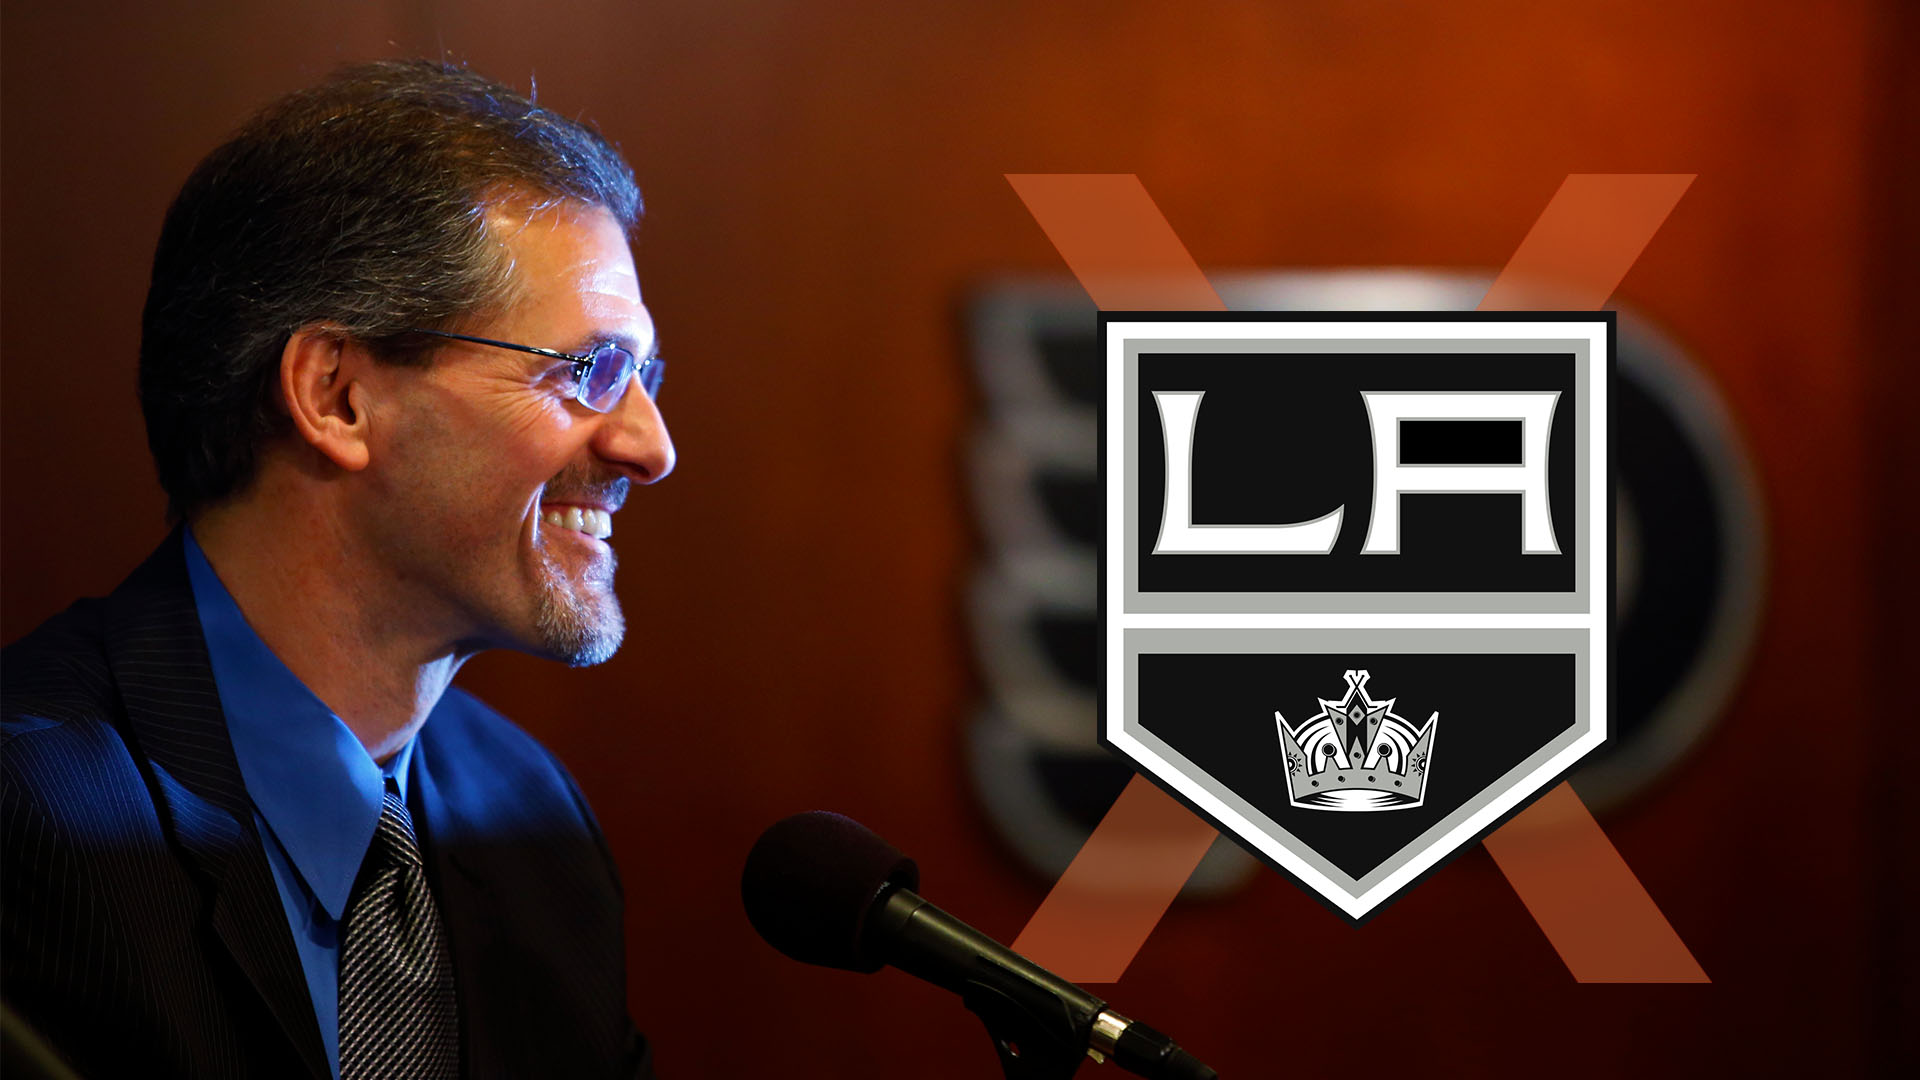 Ron Hextall returns to Los Angeles Kings front office in advisory role